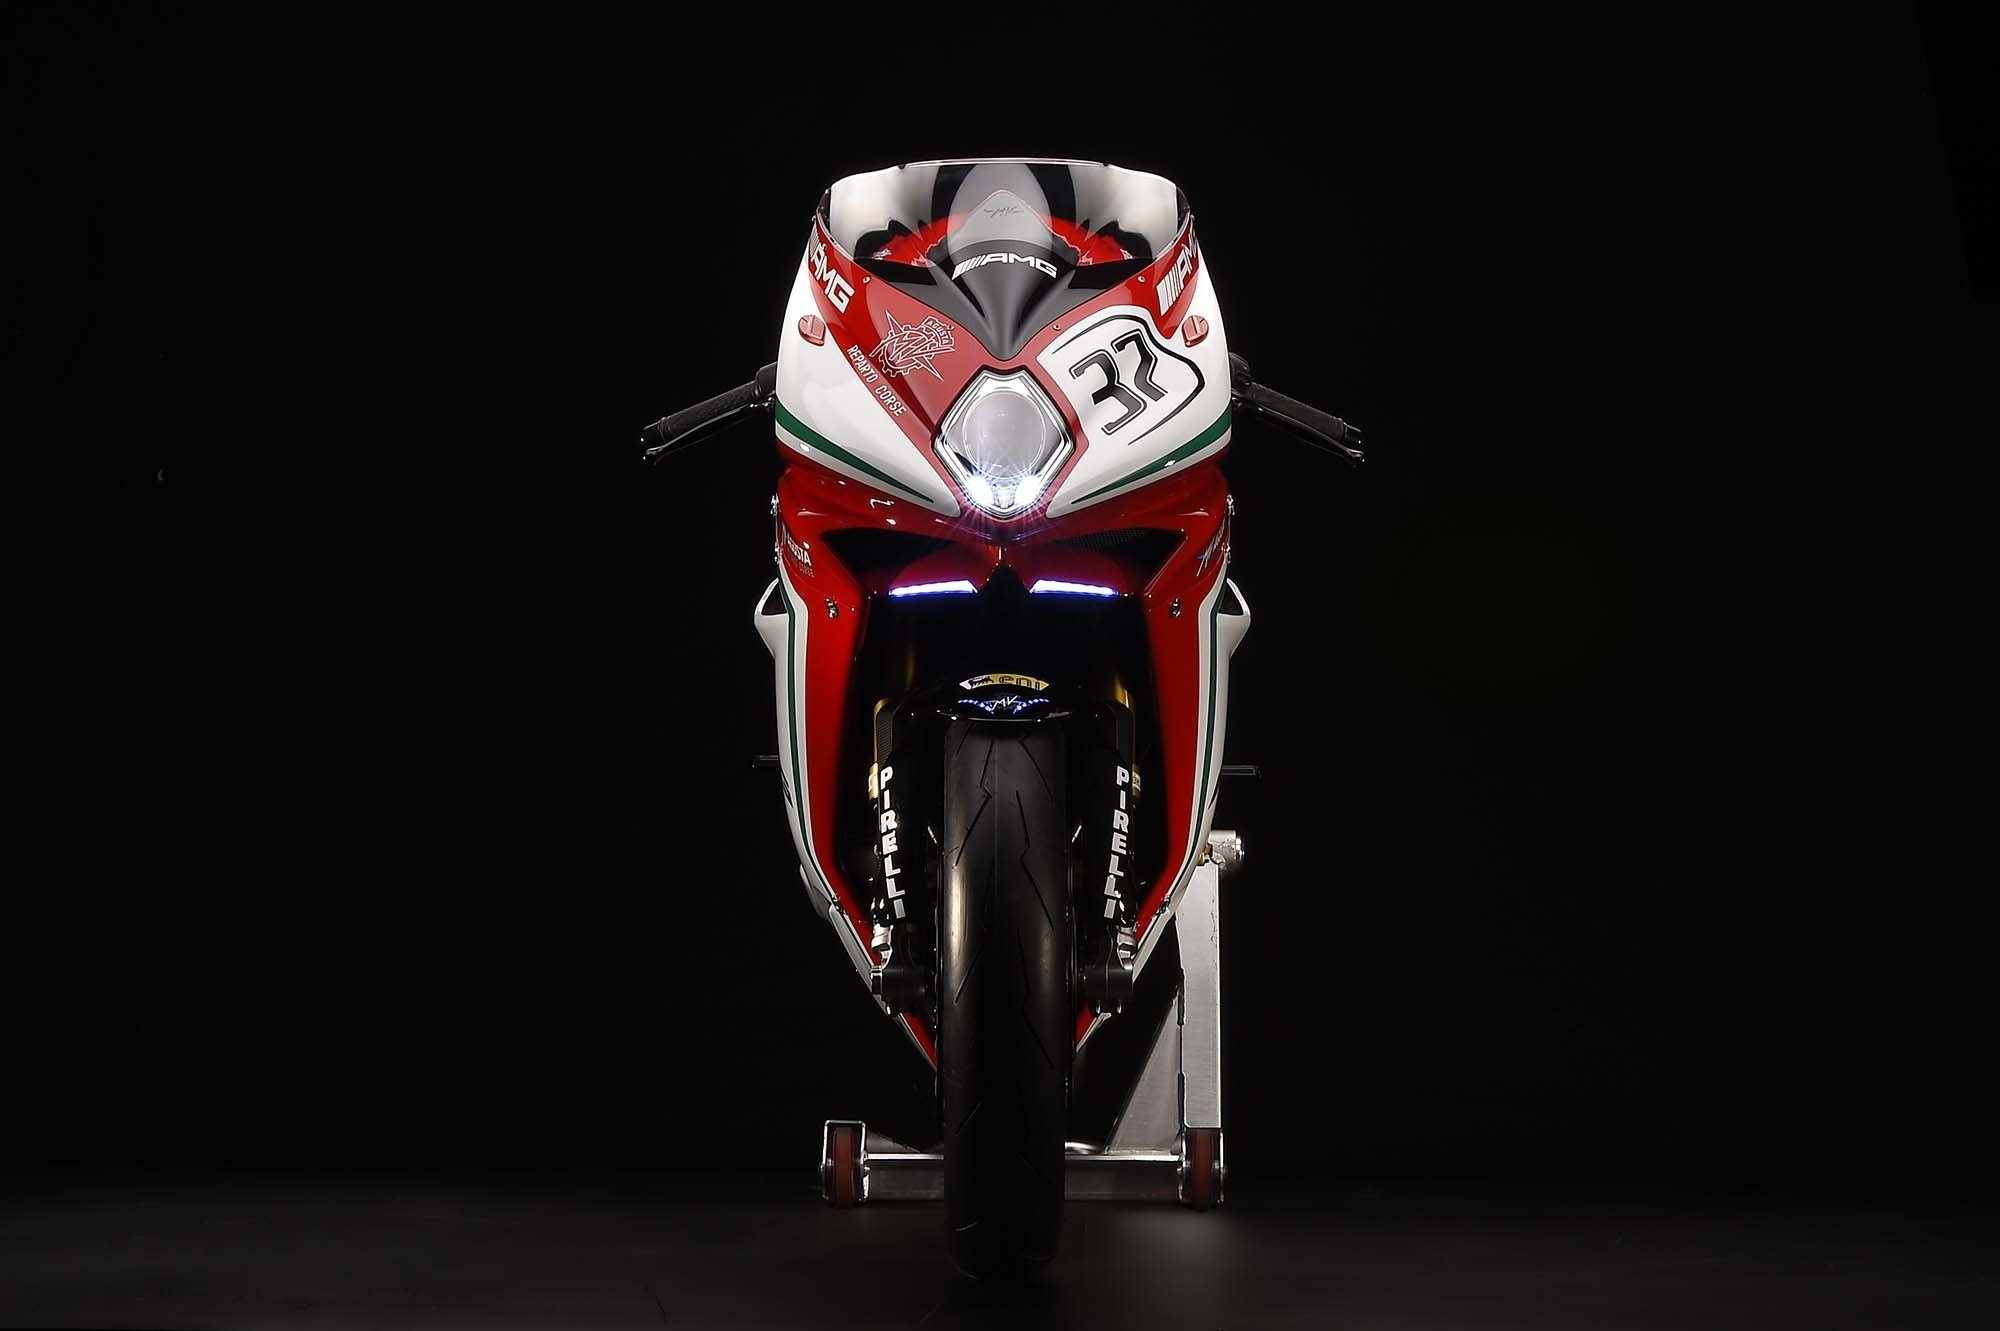 2015 MV Agusta F4 RC bike wallpaper | 2000x1331 | 650170 | WallpaperUP